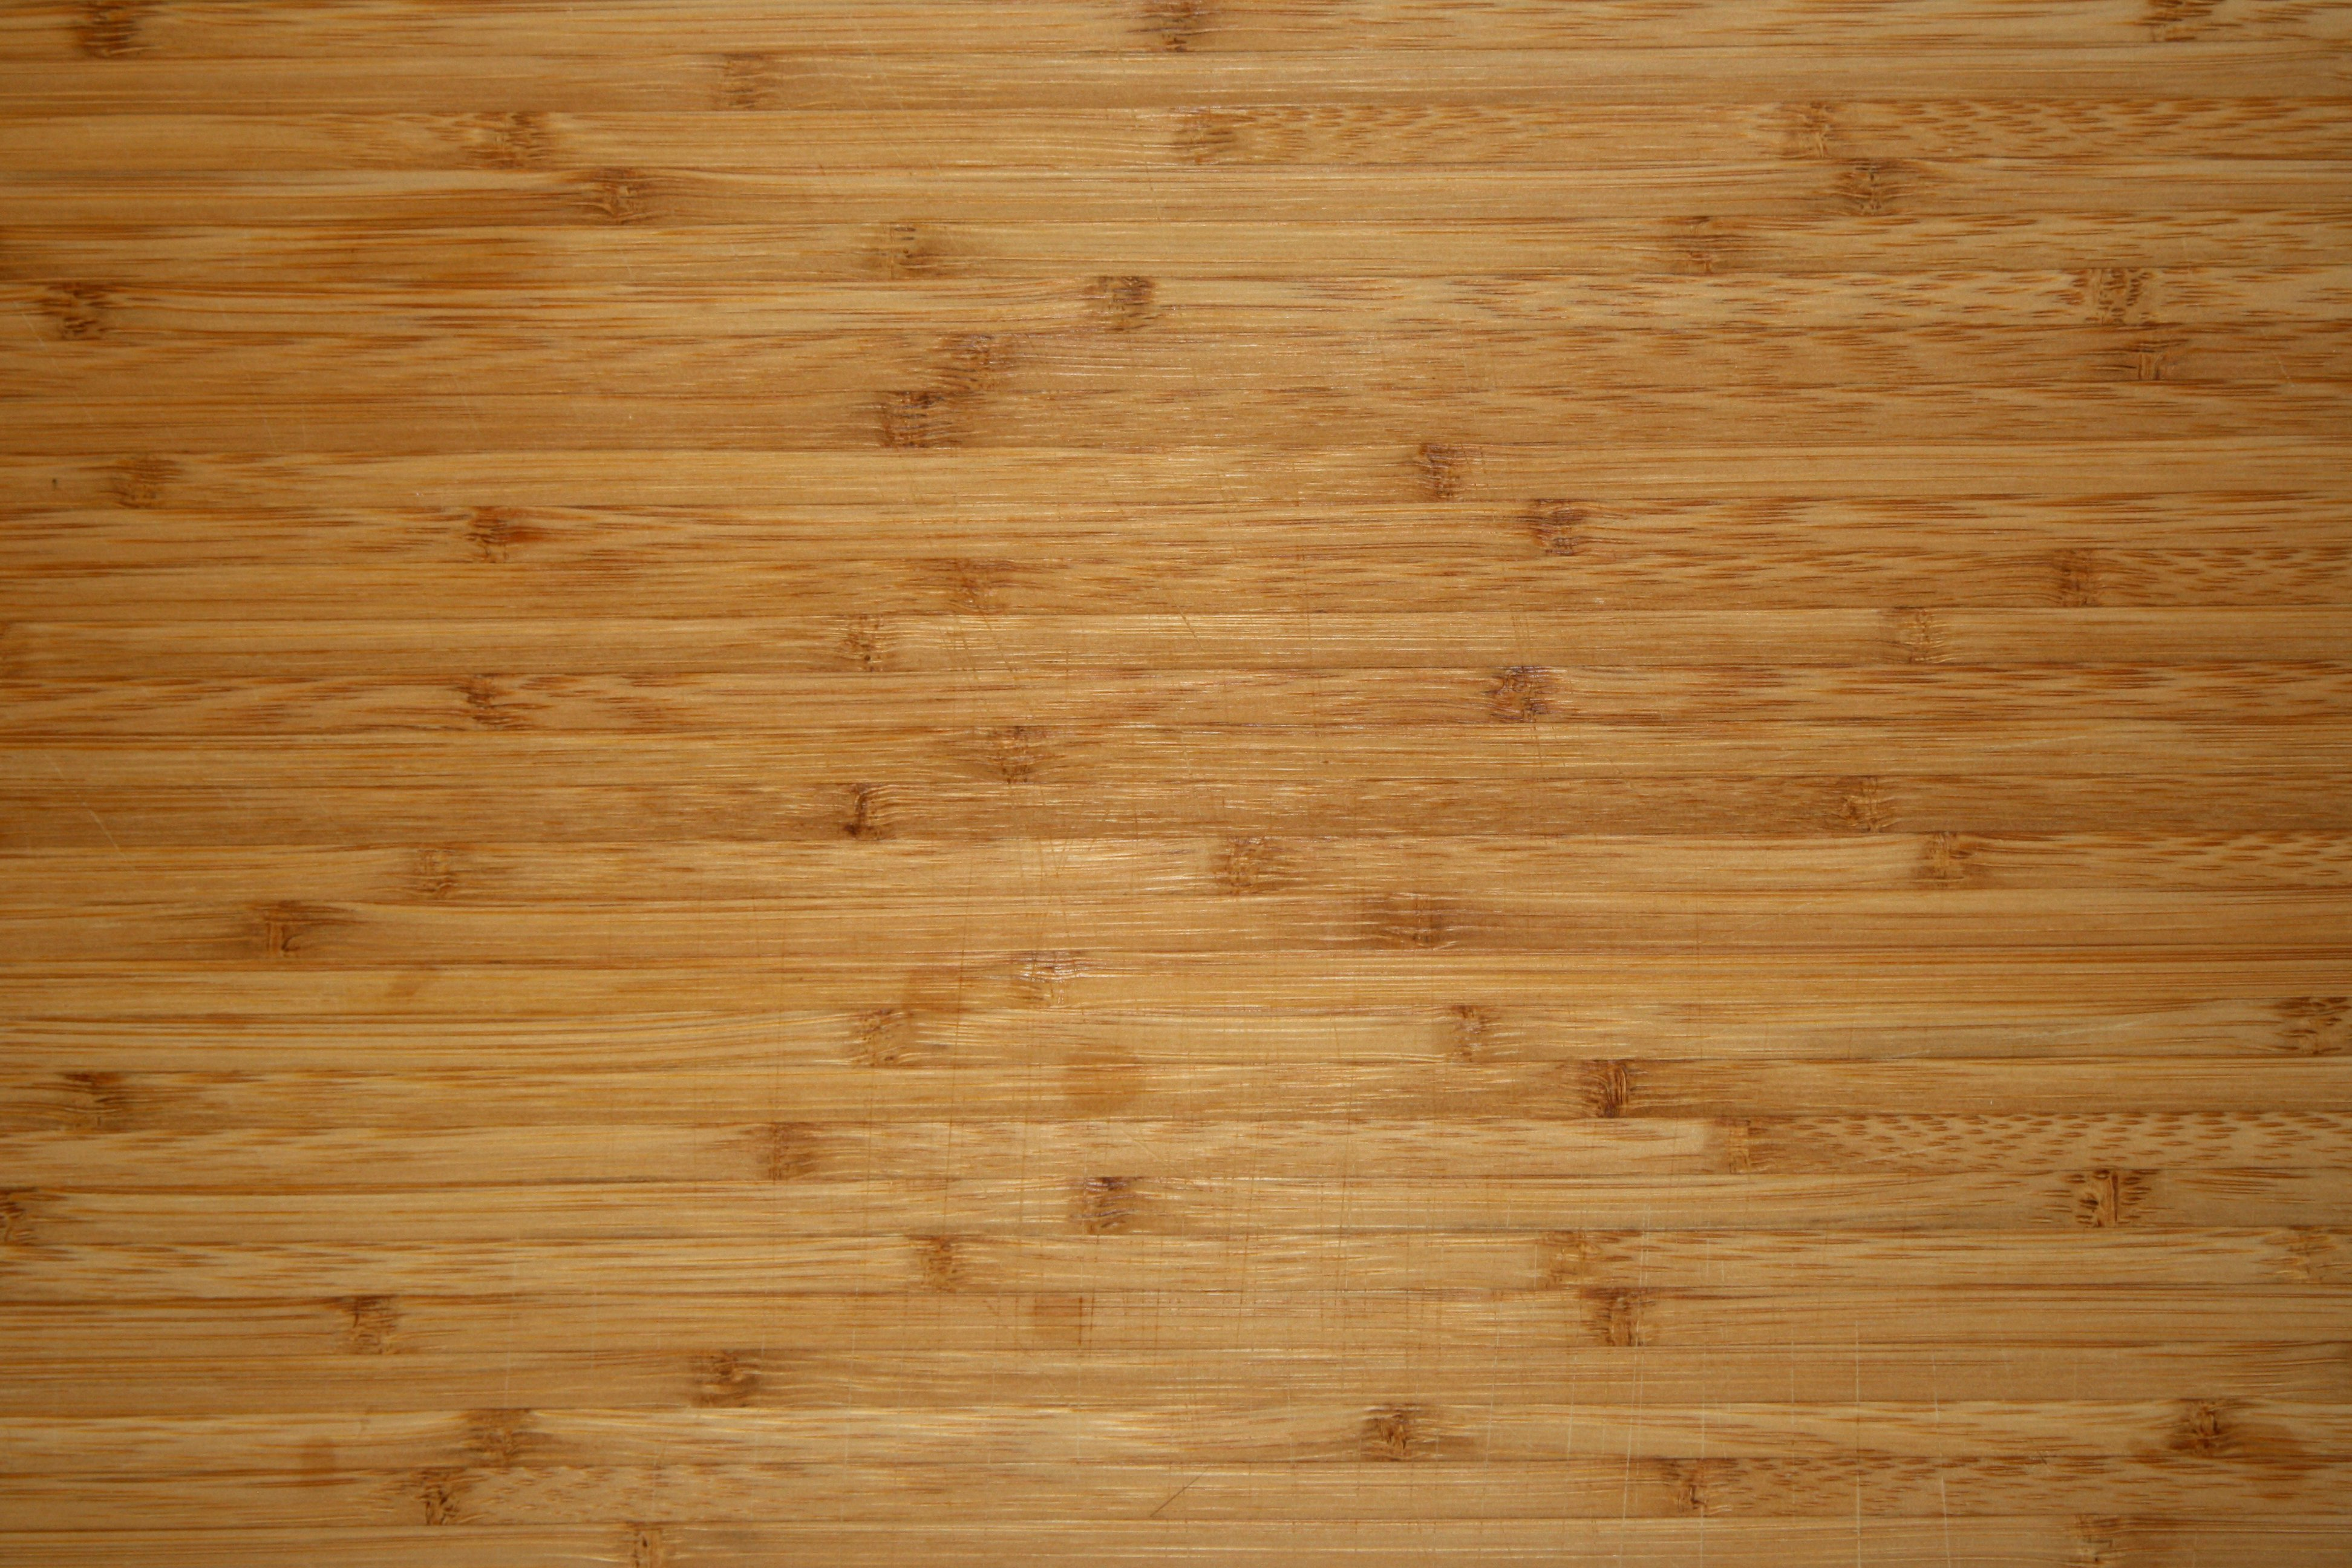 Bamboo Cutting Board Texture Picture | Free Photograph | Photos ...